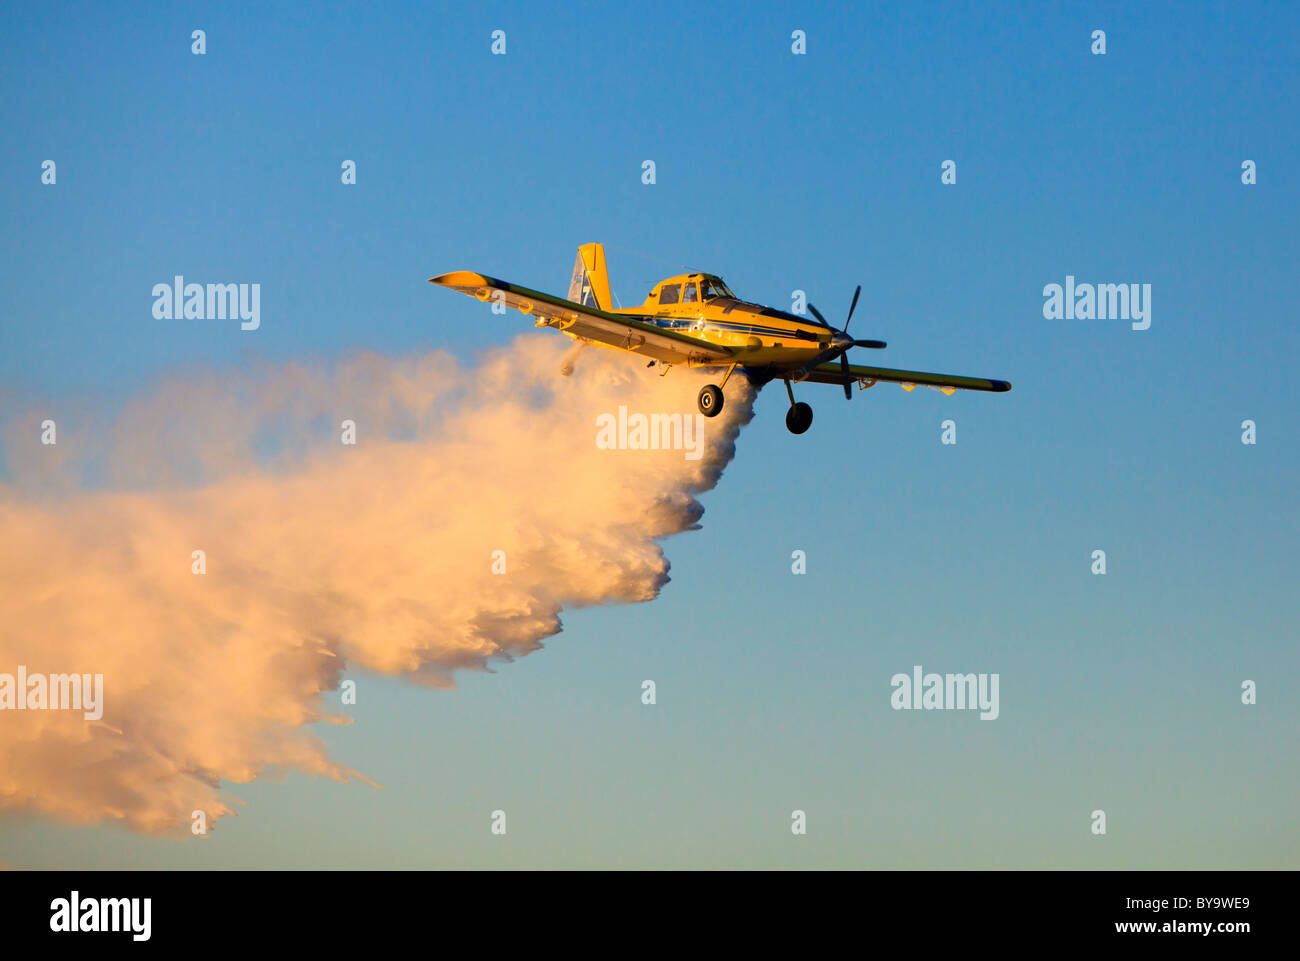 Air Tractor AT-802 firefighting water bomber plane dropping water. - Stock Image